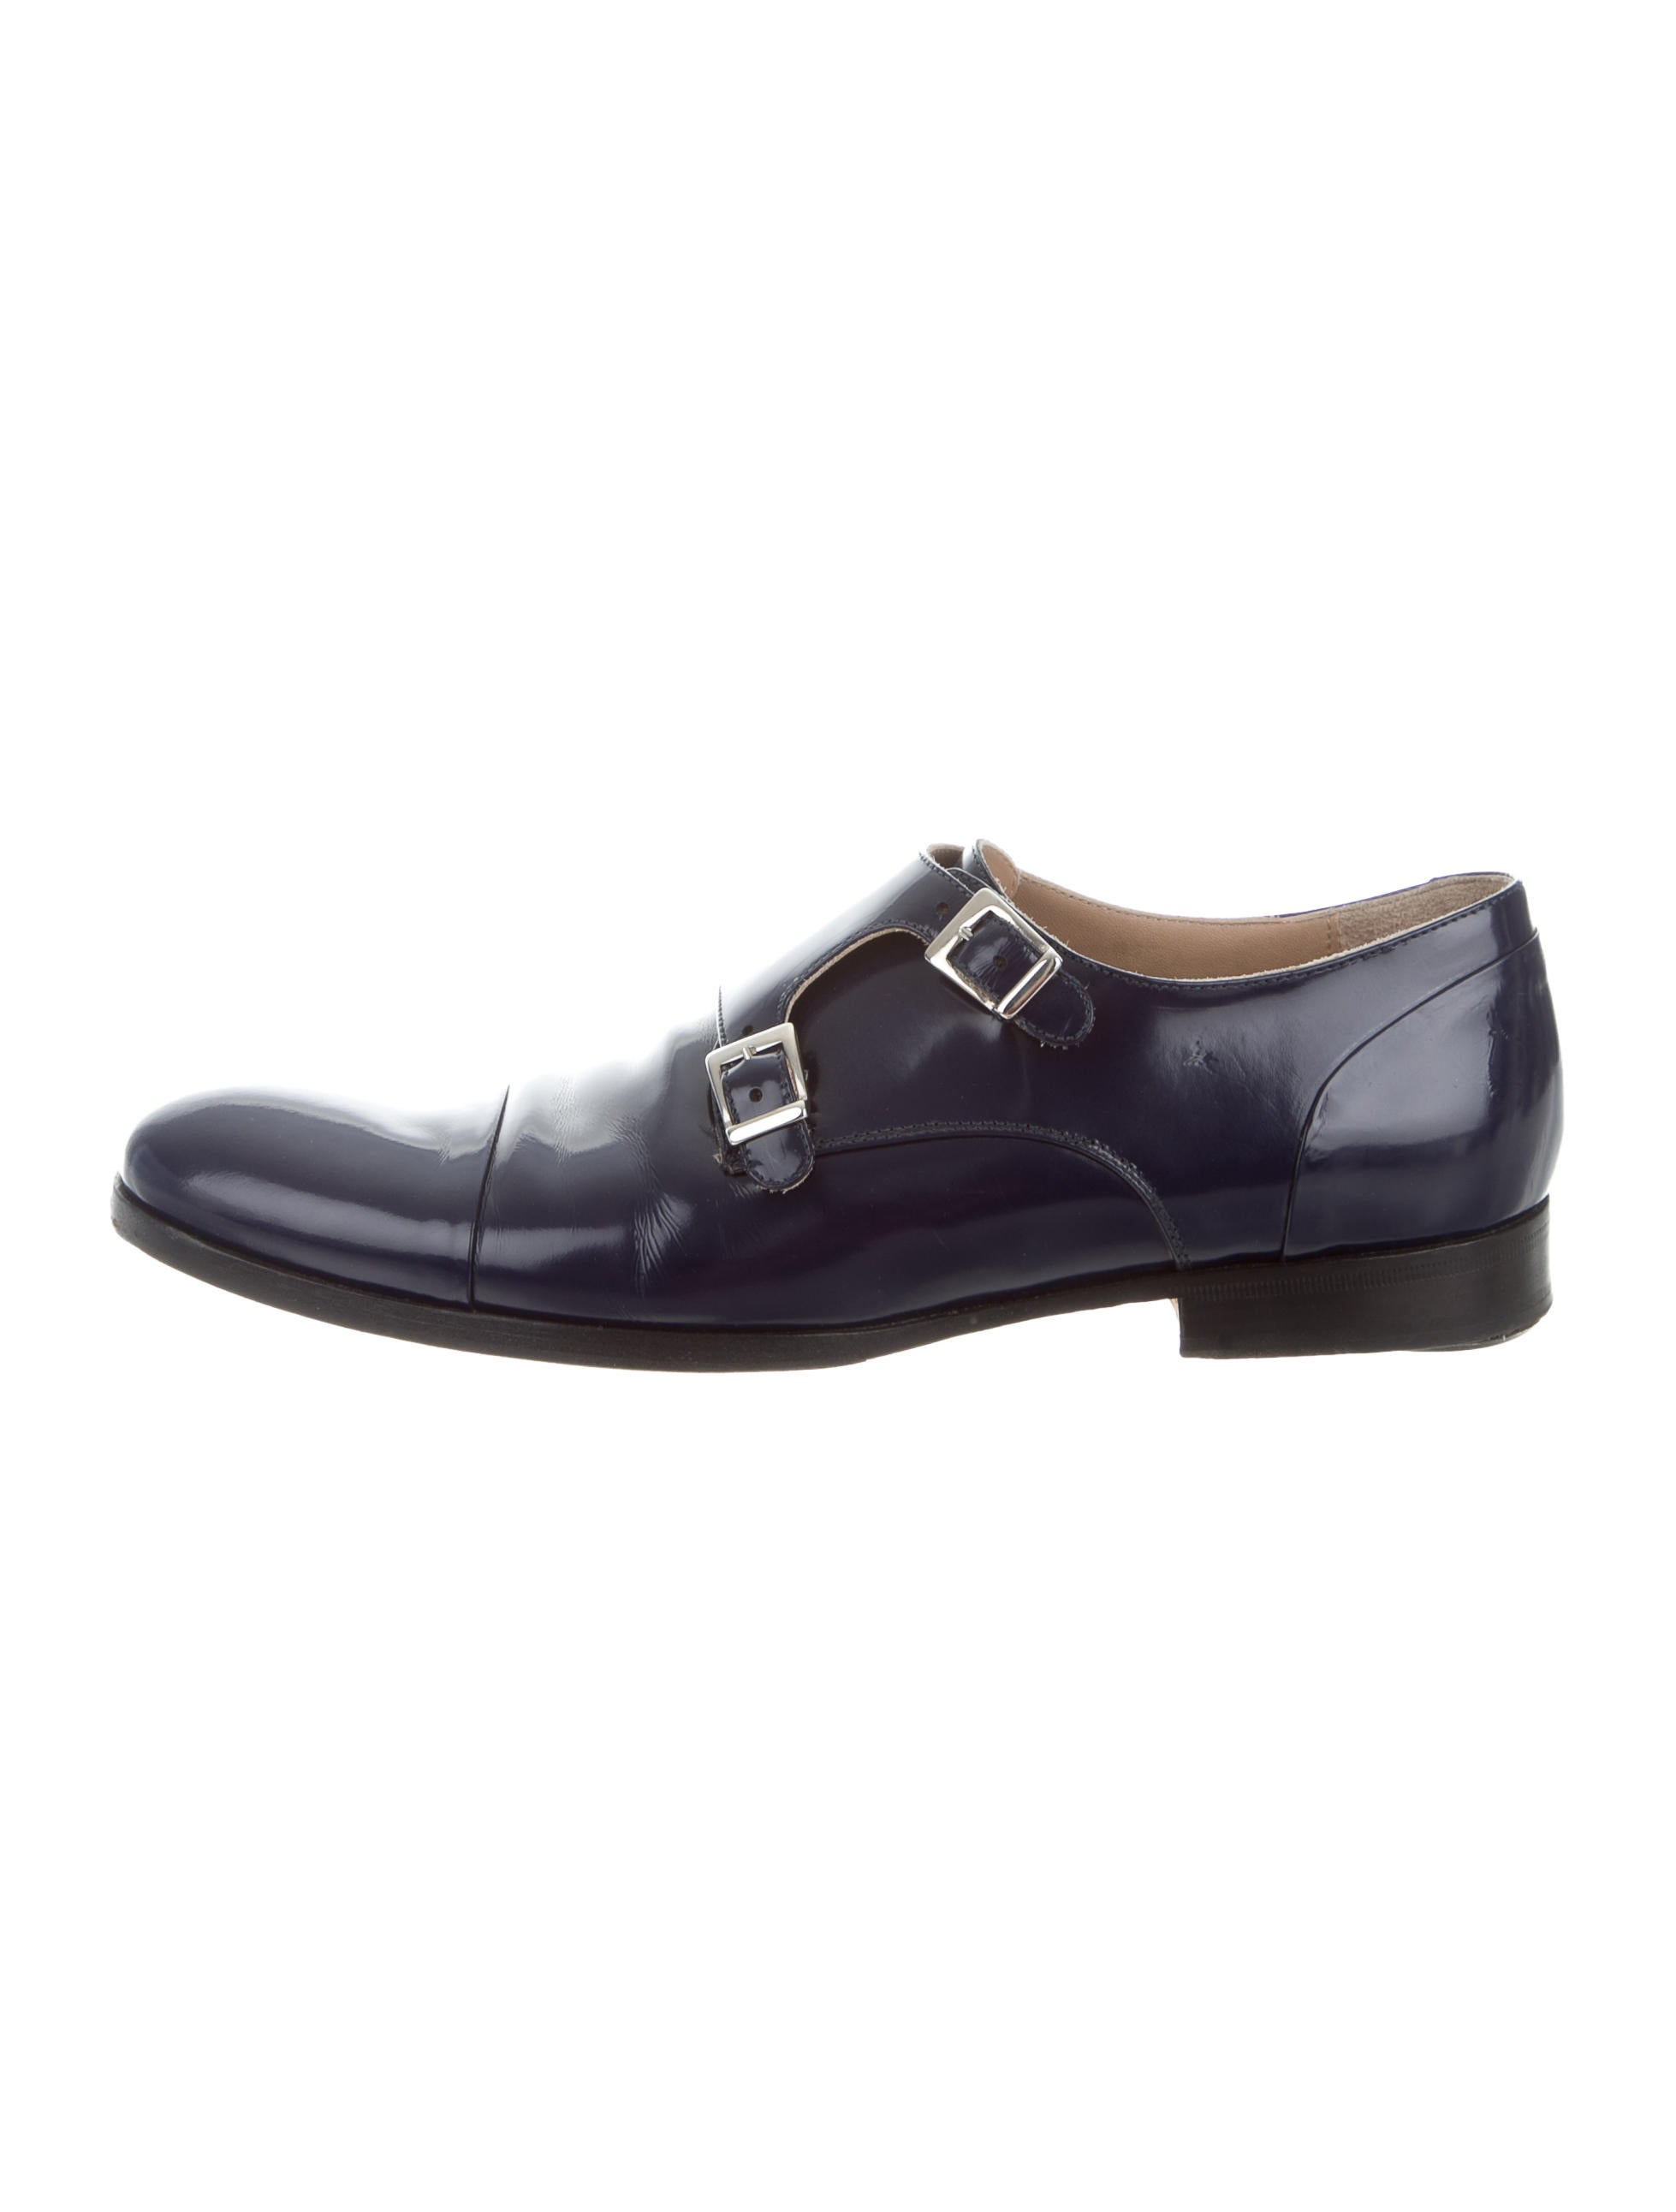 53e559392ee2 Mr. Hare Double Monk-Strap Oxfords - Shoes - WMRHR20021